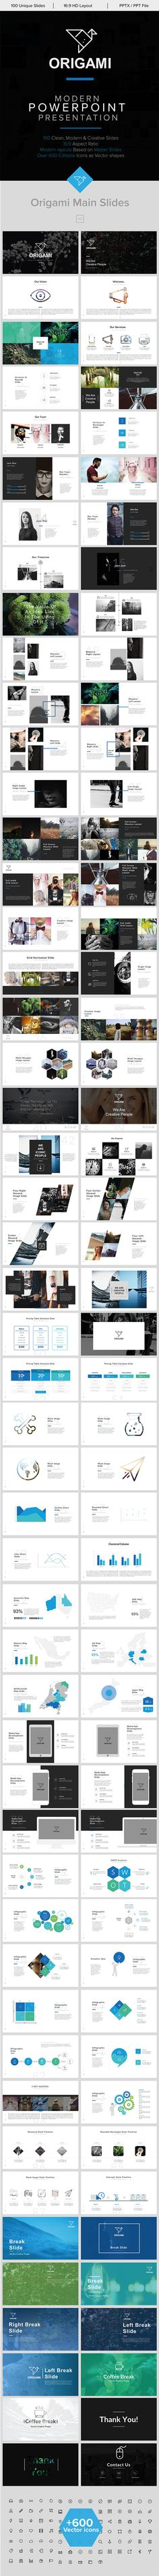 Origami Minimal PowerPoint Template. Download here: http://graphicriver.net/item/origami-minimal-powerpoint-template/16010427?ref=ksioks